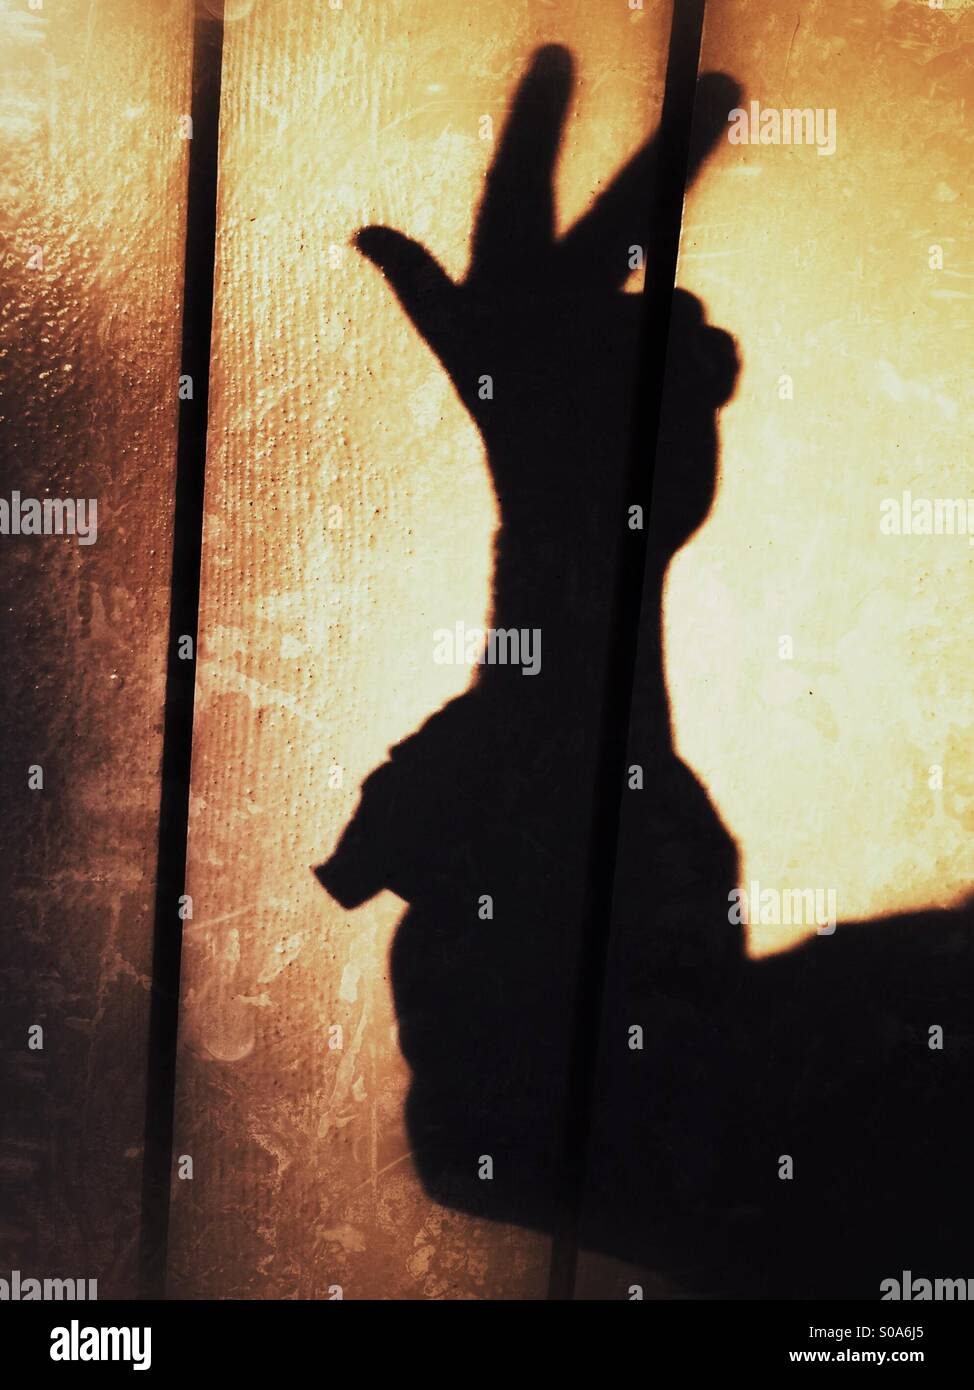 A man casting a shadow on a wall, counting on his hand. Number three. Stock Photo